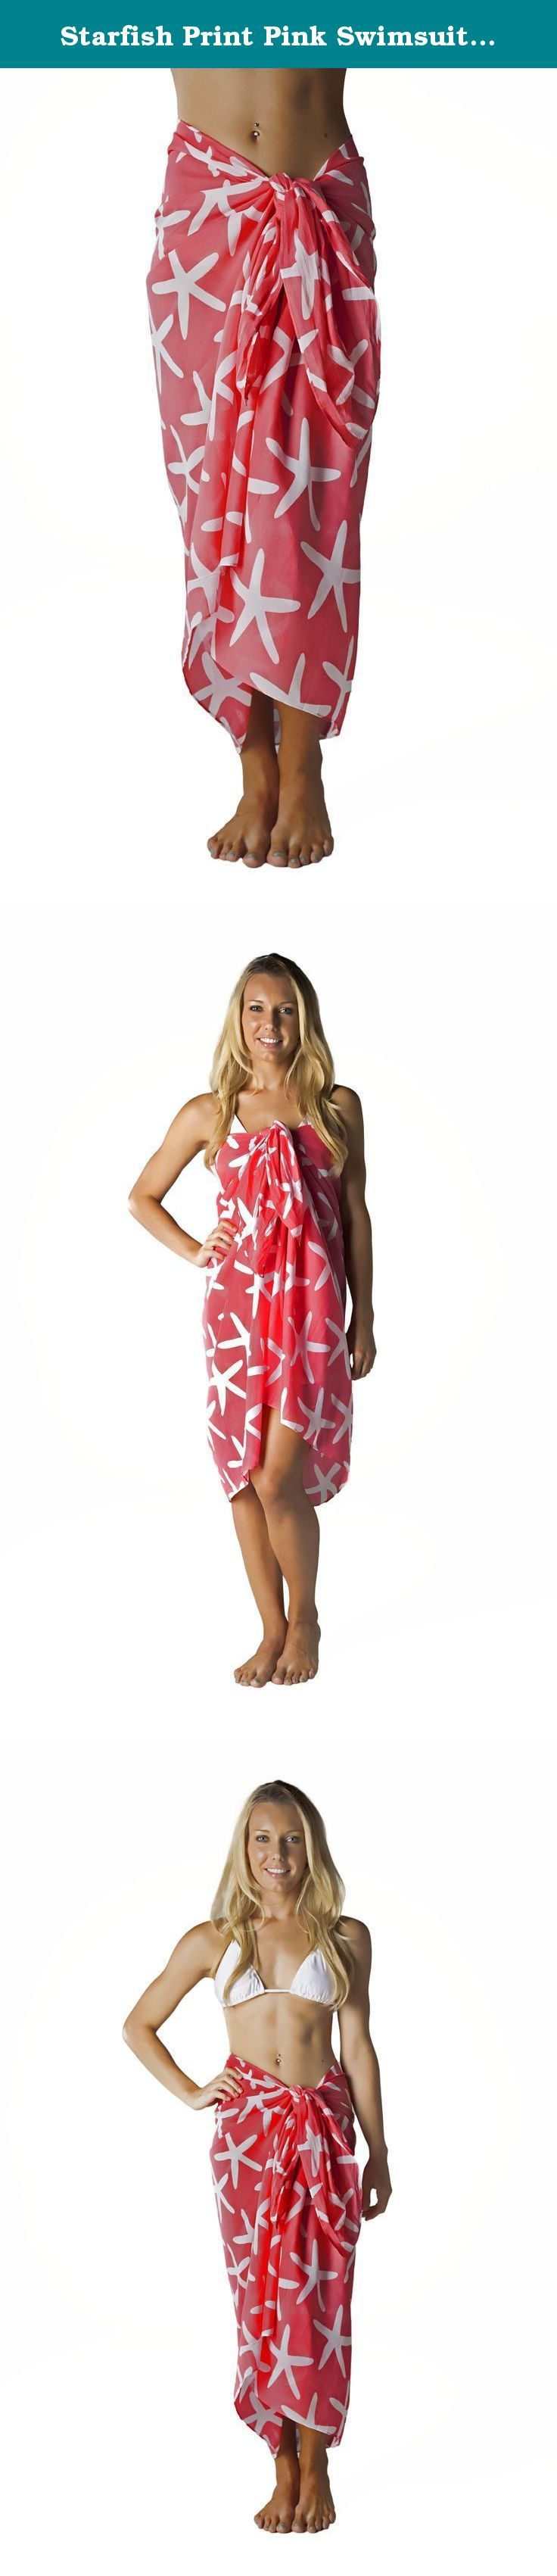 Starfish Print Pink Swimsuit Sarong Cover up in Cotton. This 100% cotton sarong has an all over starfish print in pink and white. This large rectangle can be worn long, folded to be shorter, or as a dress. Fashion tip: Parts of the print are lighter in color and may have some see-thru effect. Like a cotton t-shirt, it is not completely 100% solid. Fit Guide: All of our sarongs offer the width and length in inches. When measuring for your sarong, base the fit on the widest area of your…